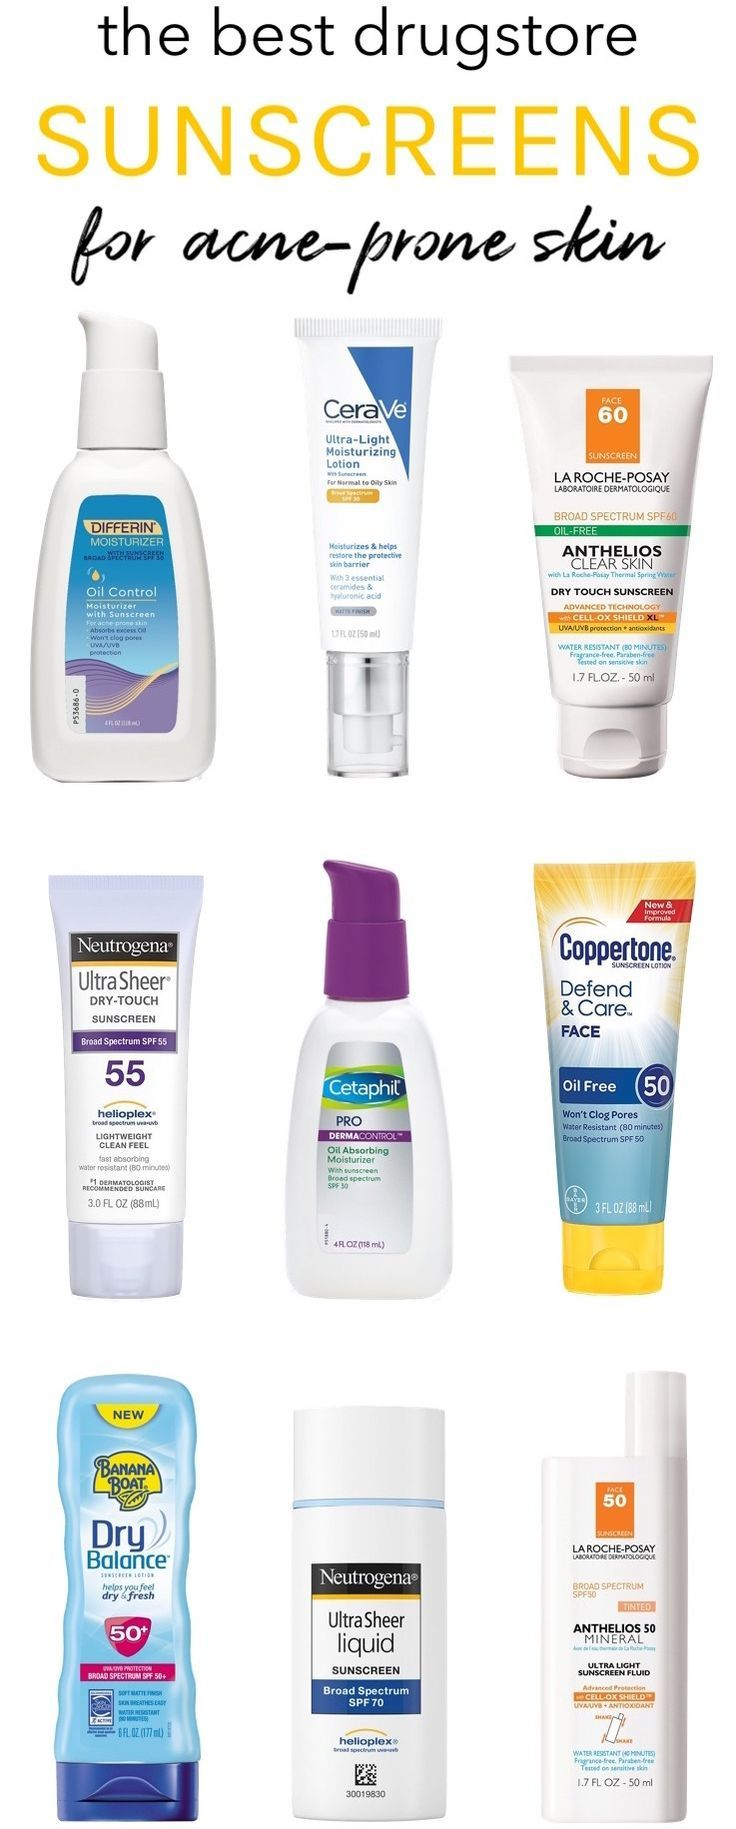 Best Drugstore Sunscreens For Acne-Prone Skin (Breakouts be gone!)